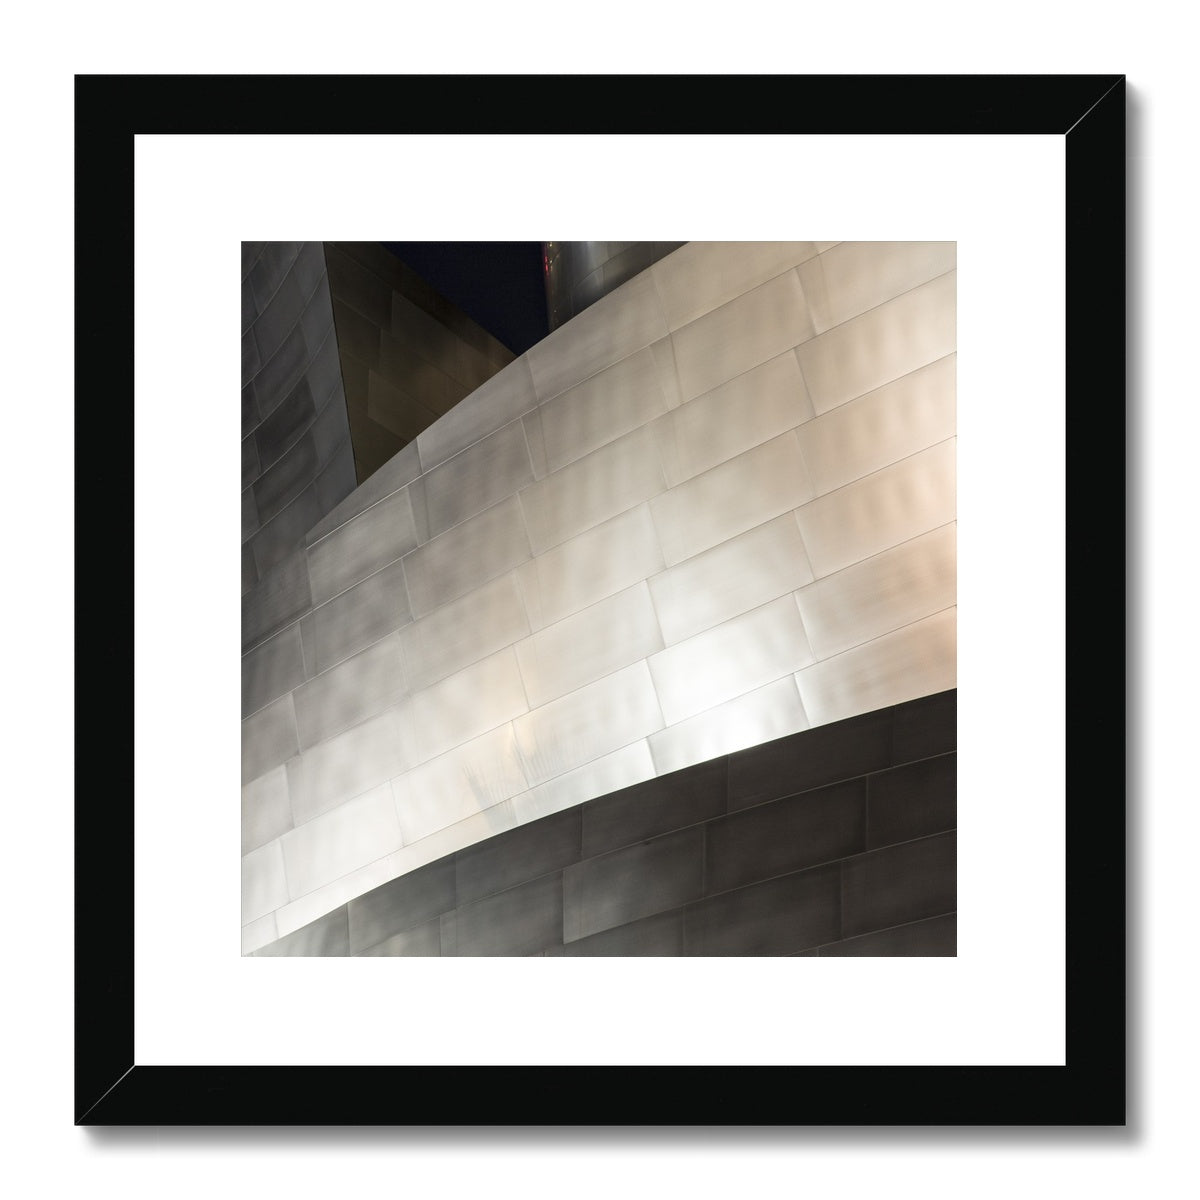 Disney Concert Hall_1 Framed & Mounted Print